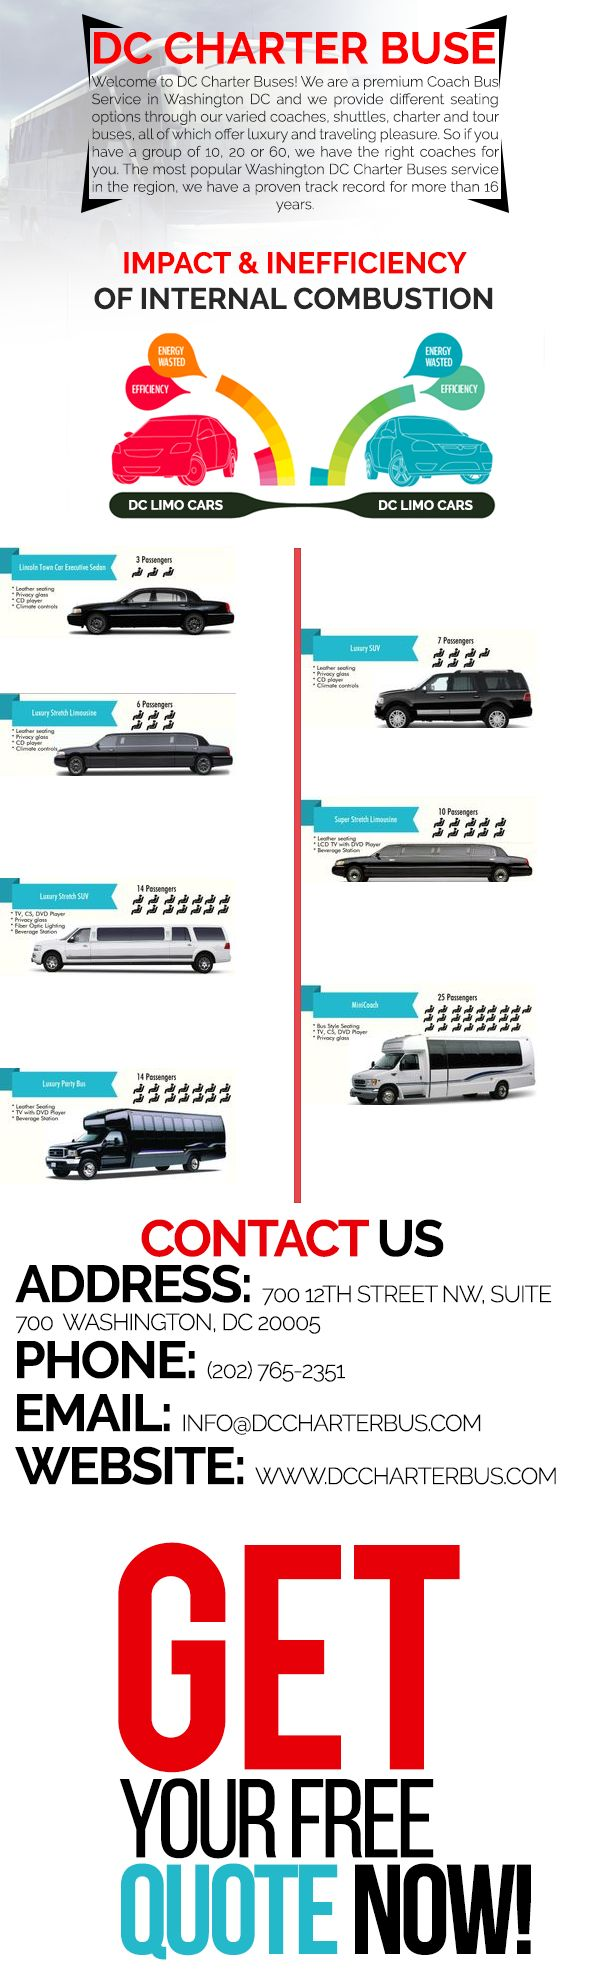 Car Rental Quotes 36 Best Dc Charter Bus Images On Pinterest  Washington Dc